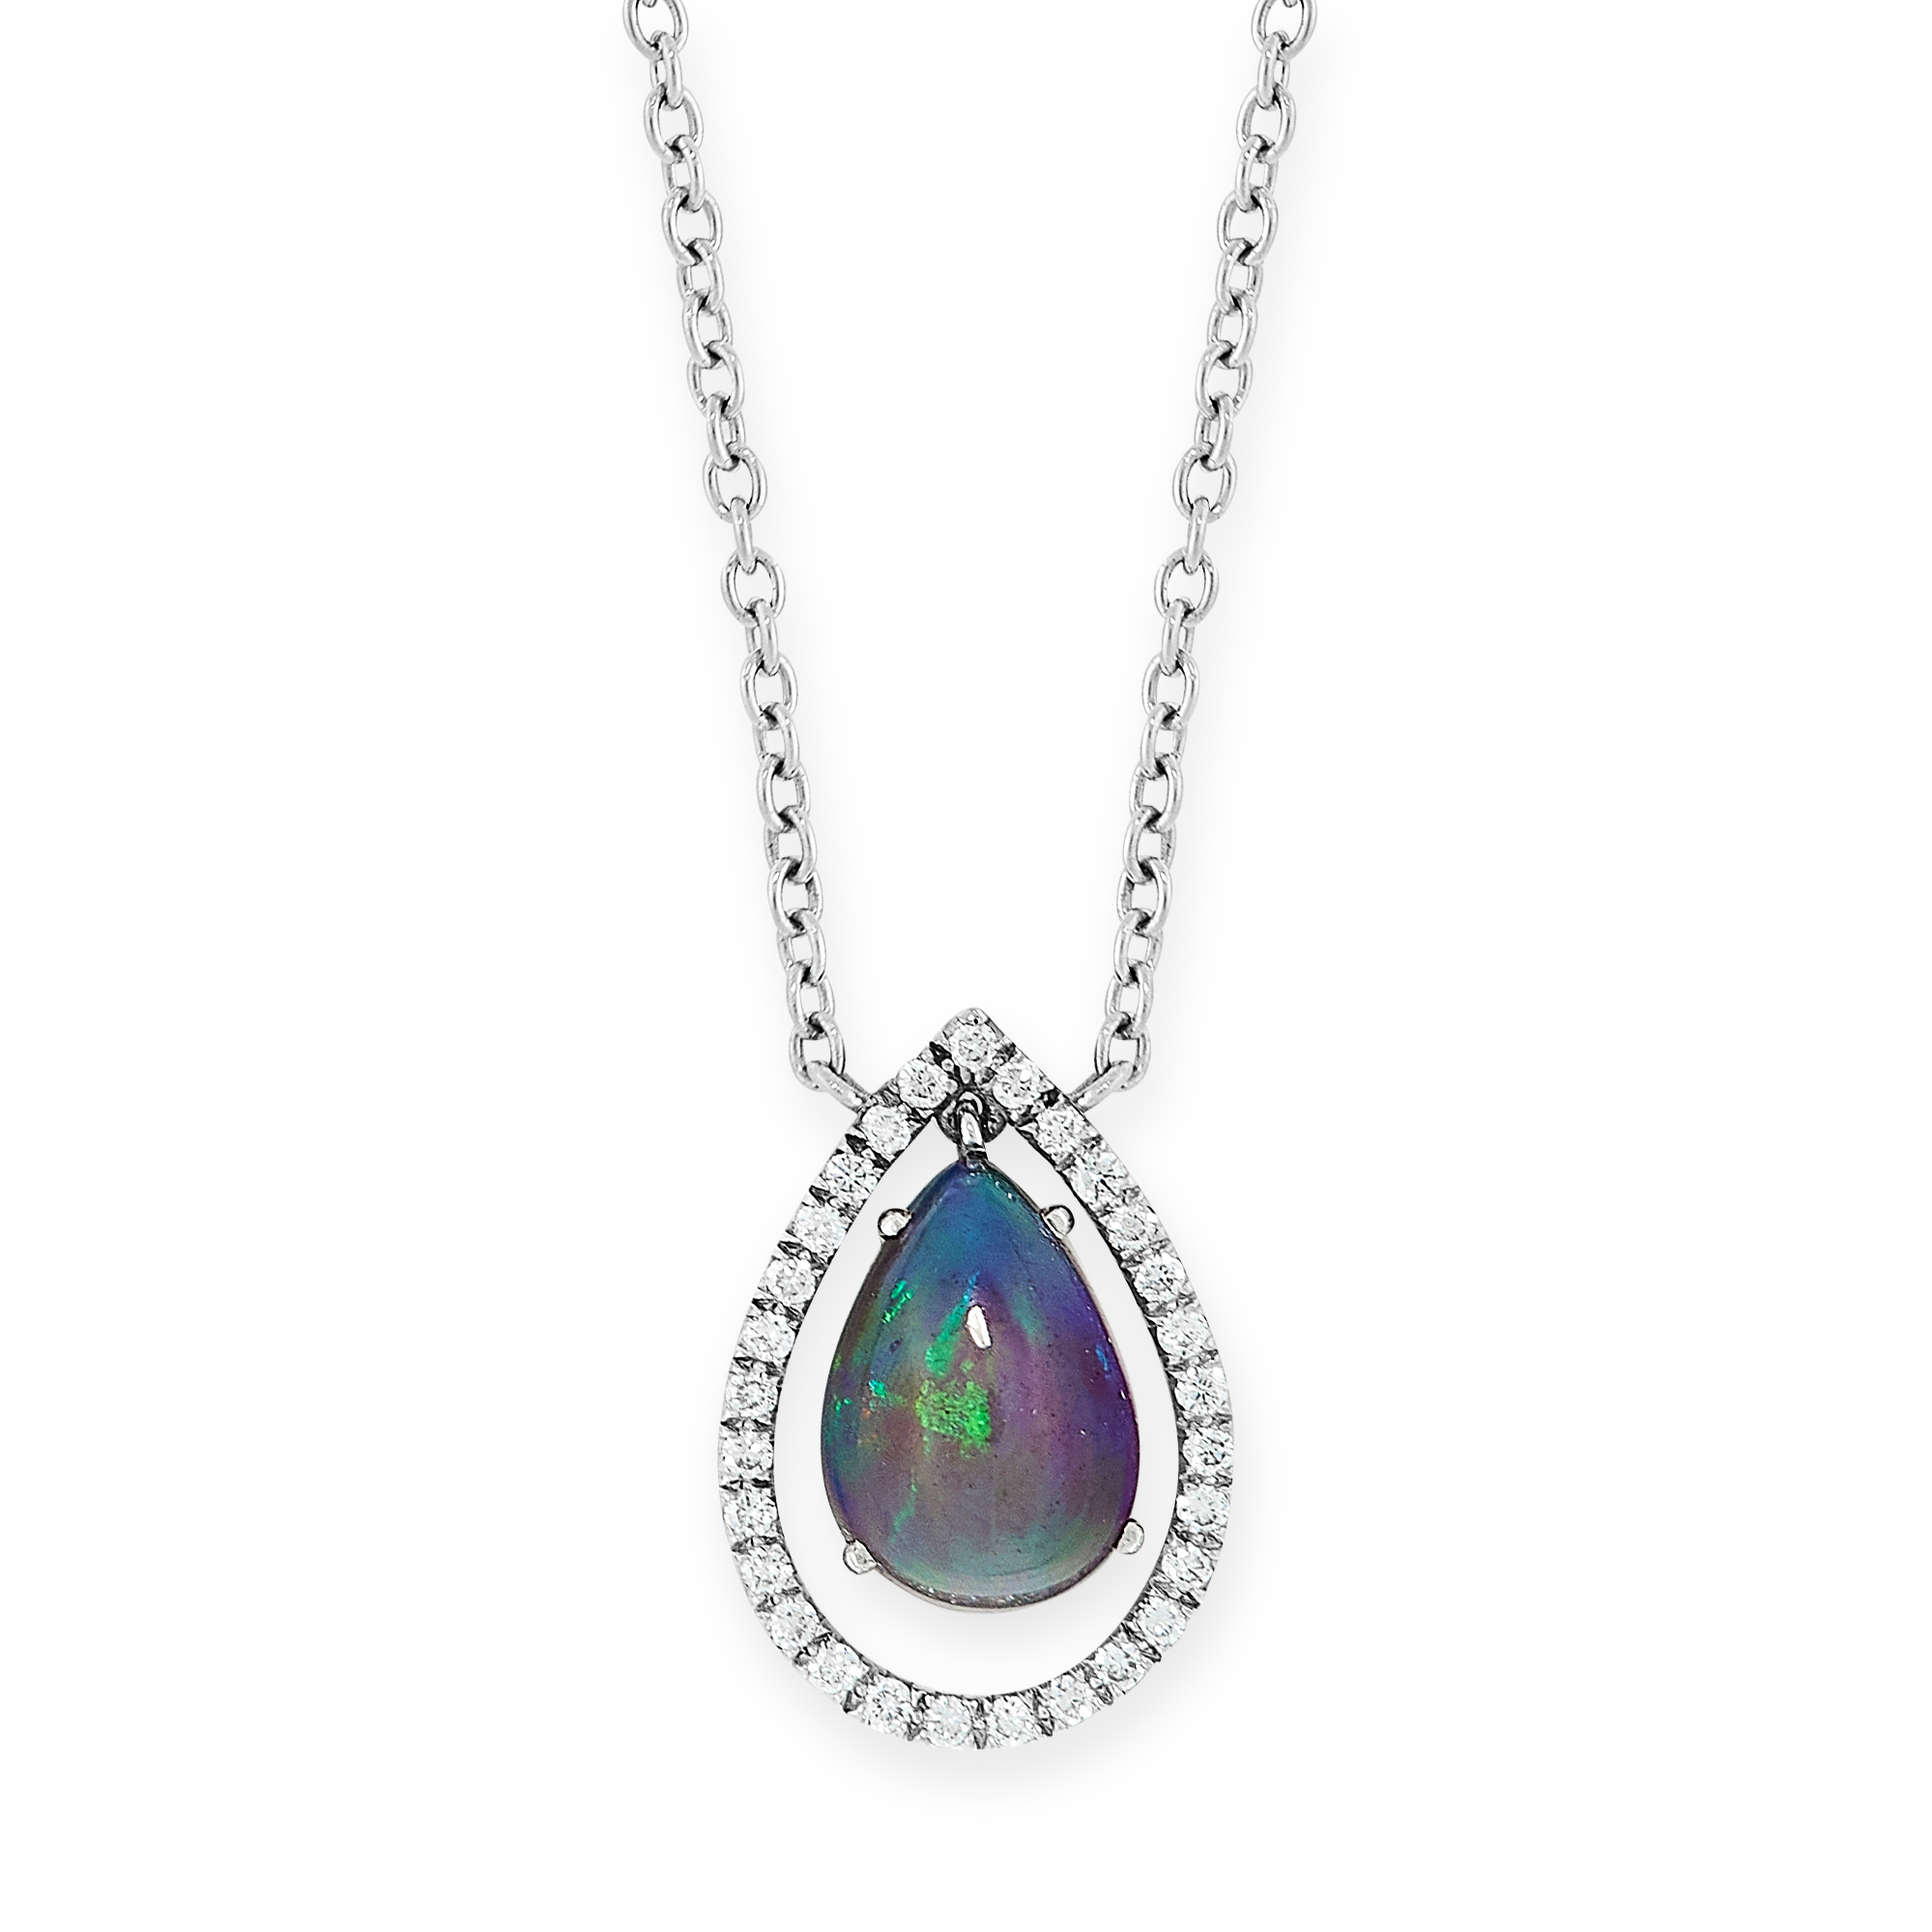 BLACK OPAL AND DIAMOND PENDANT set with a pear cabochon black opal of 1.25 carats in a border of